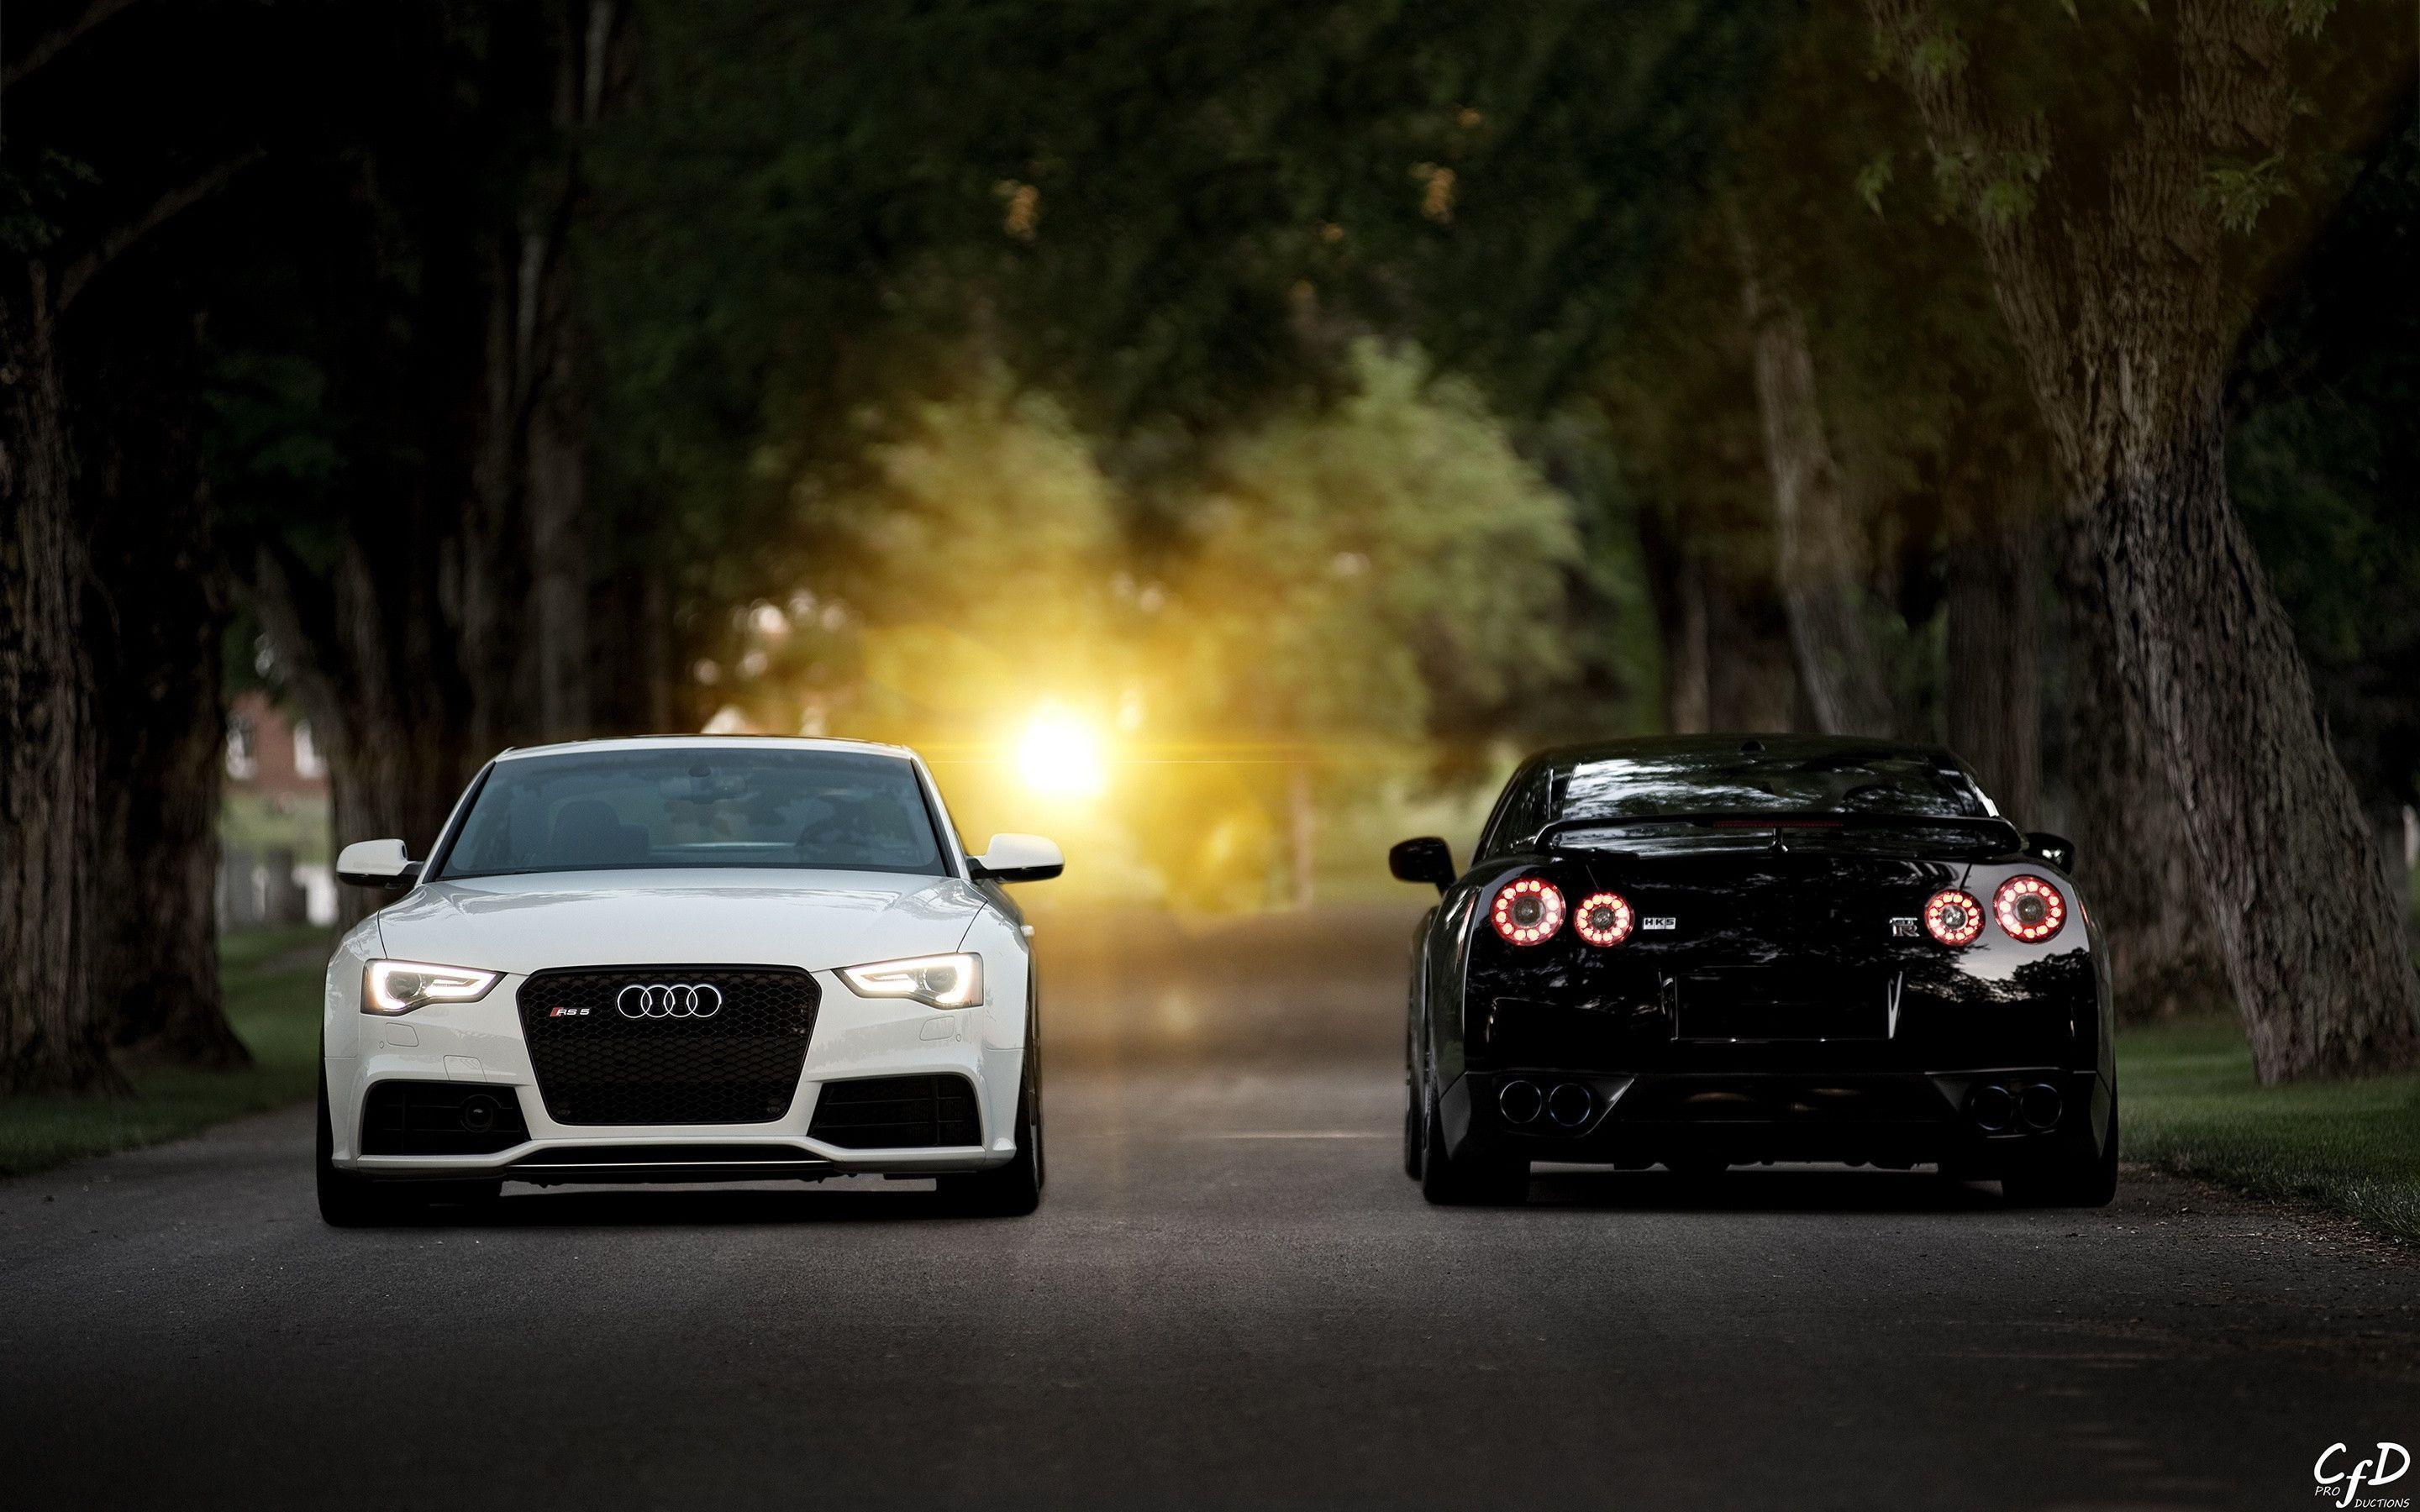 Nissan Gtr Wallpapers - Full HD wallpaper search - page 2